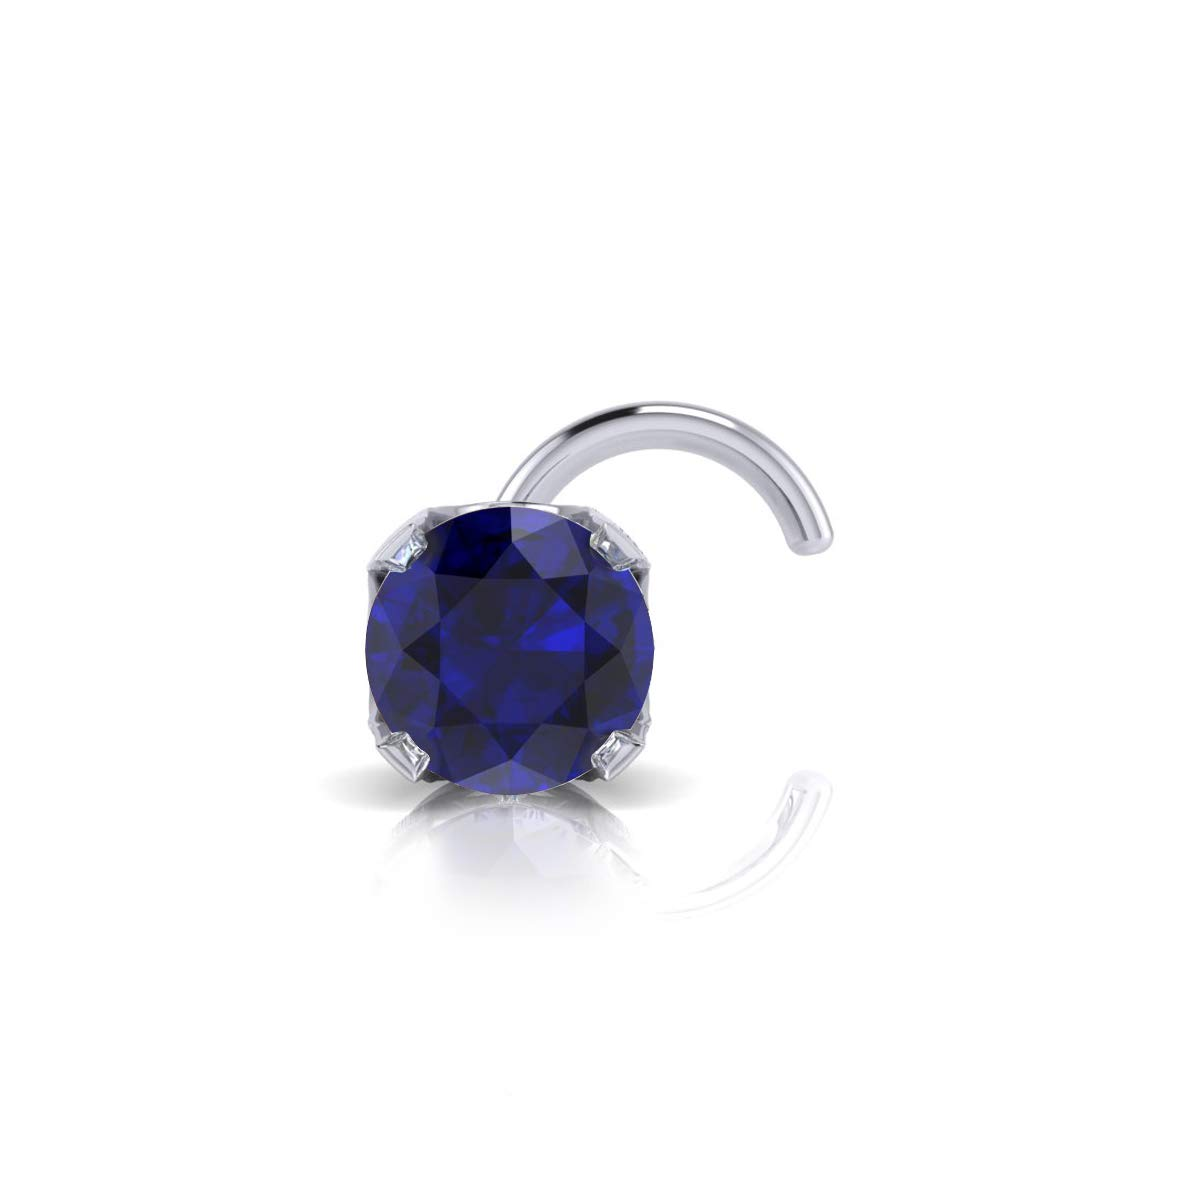 2mm 0.03 Carat Sapphire Stud Nose Ring In 14K White Gold